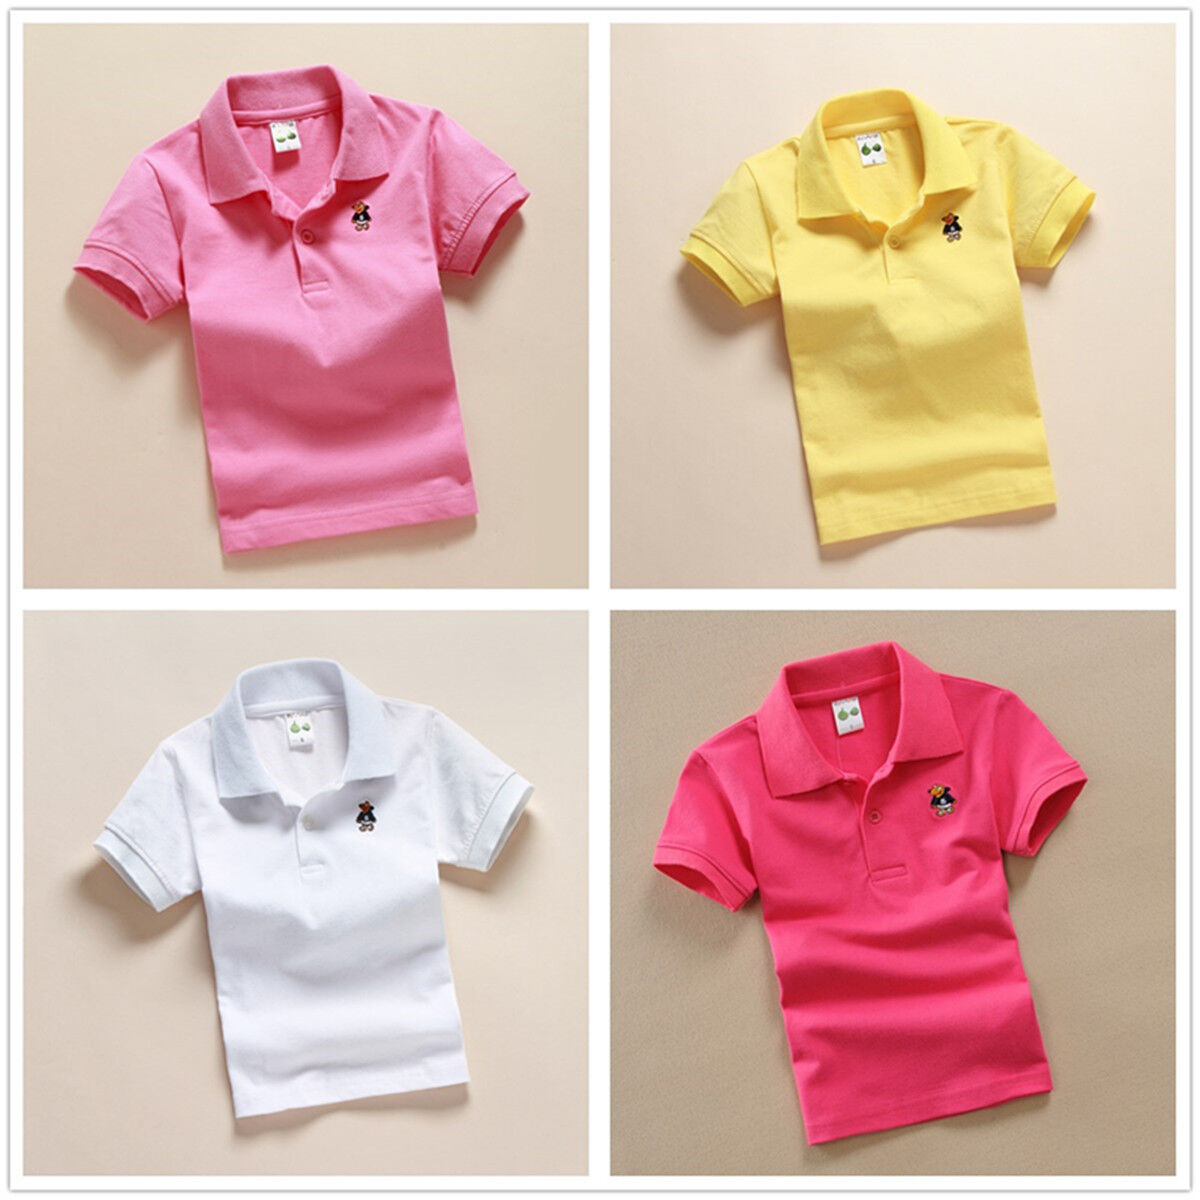 Pink Polo Shirts For Toddlers Chad Crowley Productions